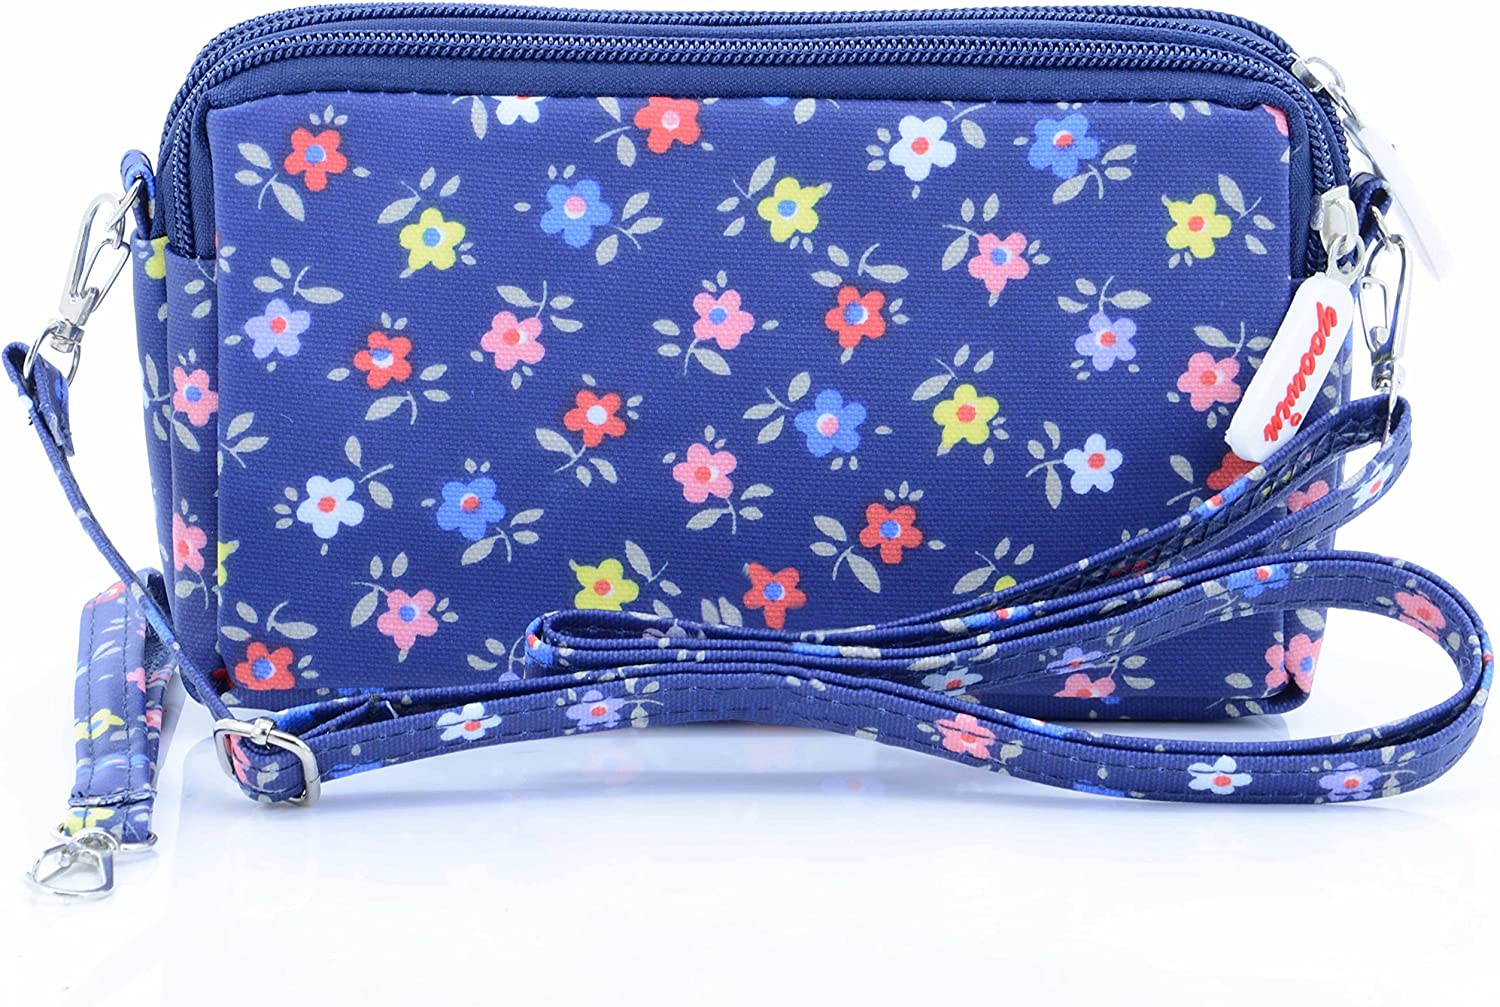 Light Blue liangdongshop Leisure Style Solid Color Nylon Multi-layer Wristlets Clutches Cell Phone Bag Wallet Pouch